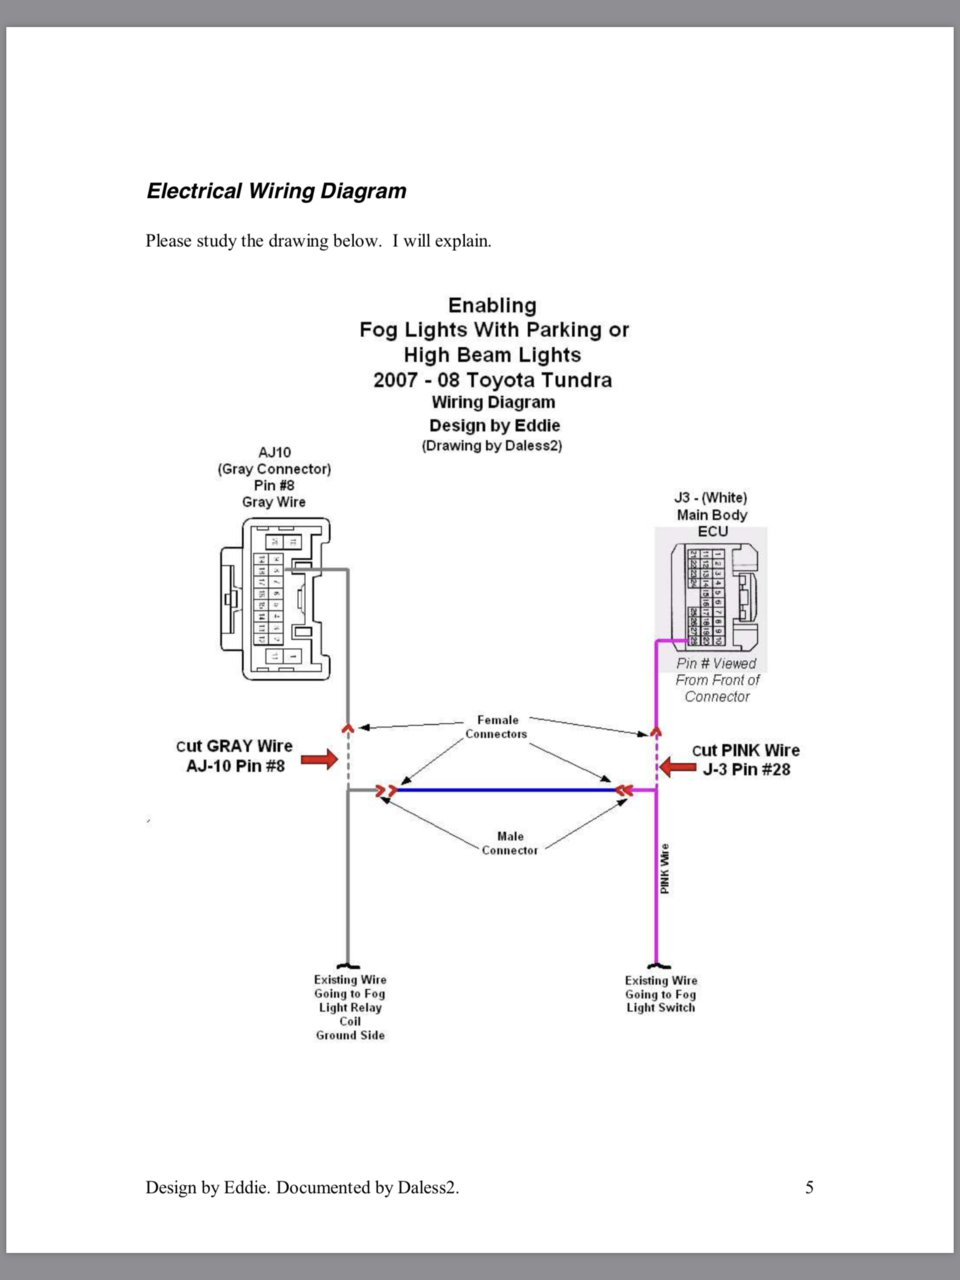 2008 Toyota Tundra Wiring Diagrams map of the central united ... on 2007 tundra steering diagram, 2007 tundra headlight, 2007 tundra parts catalog, toyota tundra diagram, 2007 tundra wheels, 2007 tundra electrical schematics, 2007 tundra engine, 2007 tundra parts diagram, 2007 tundra alternator diagram, fj cruiser wiring diagram, 2007 tundra fuel pump, 2007 tundra exhaust diagram, toyota wiring diagram, 2005 rav4 wiring diagram, 2007 tundra belt diagram, 2007 tundra 6 inch lift, 2007 tundra brakes, 2007 tundra tires, 2007 tundra fuse diagram, 2007 tundra maintenance schedule,